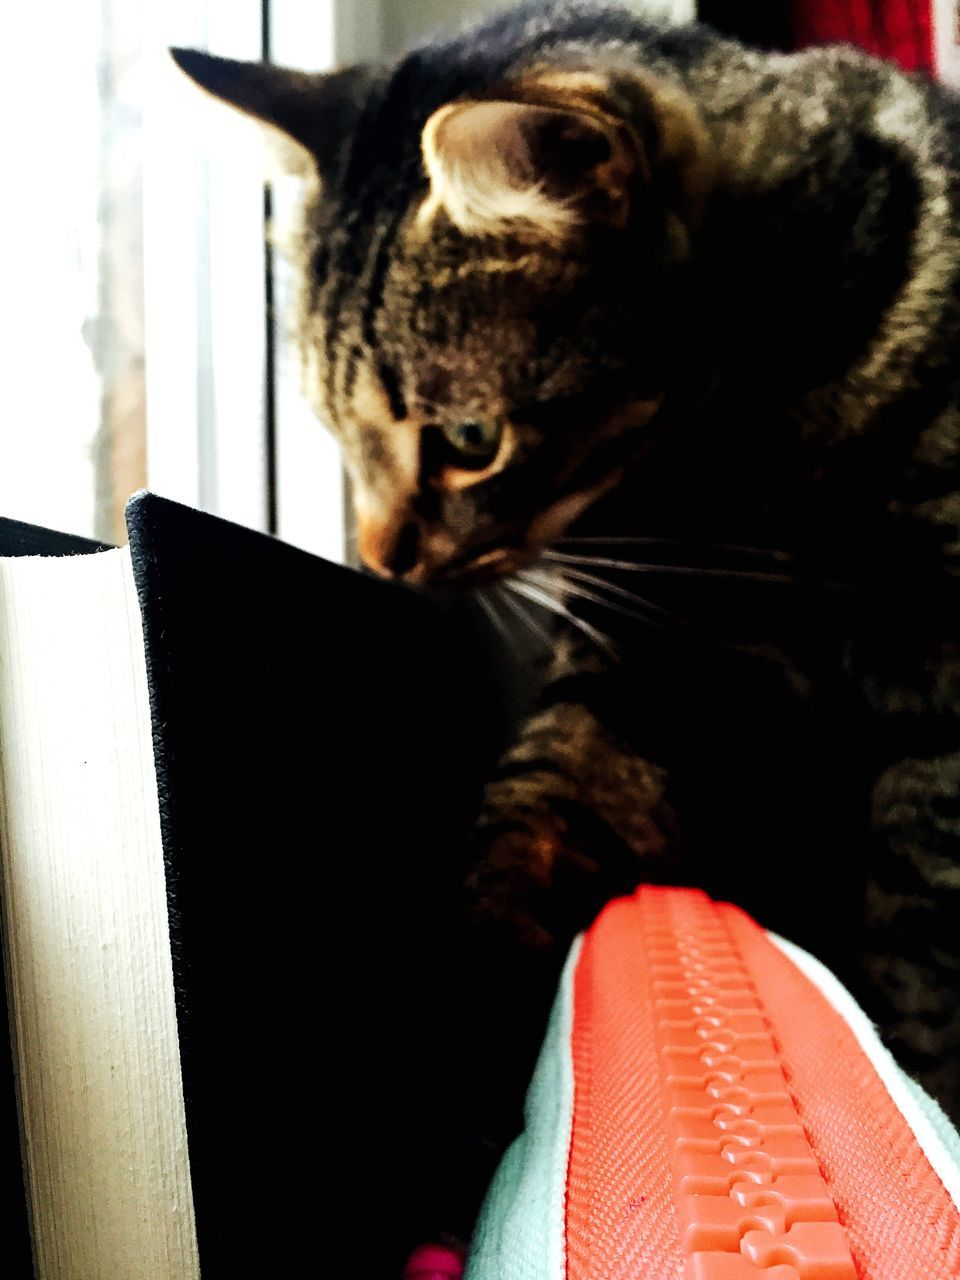 domestic cat, animal themes, one animal, mammal, feline, pets, domestic animals, no people, indoors, day, close-up